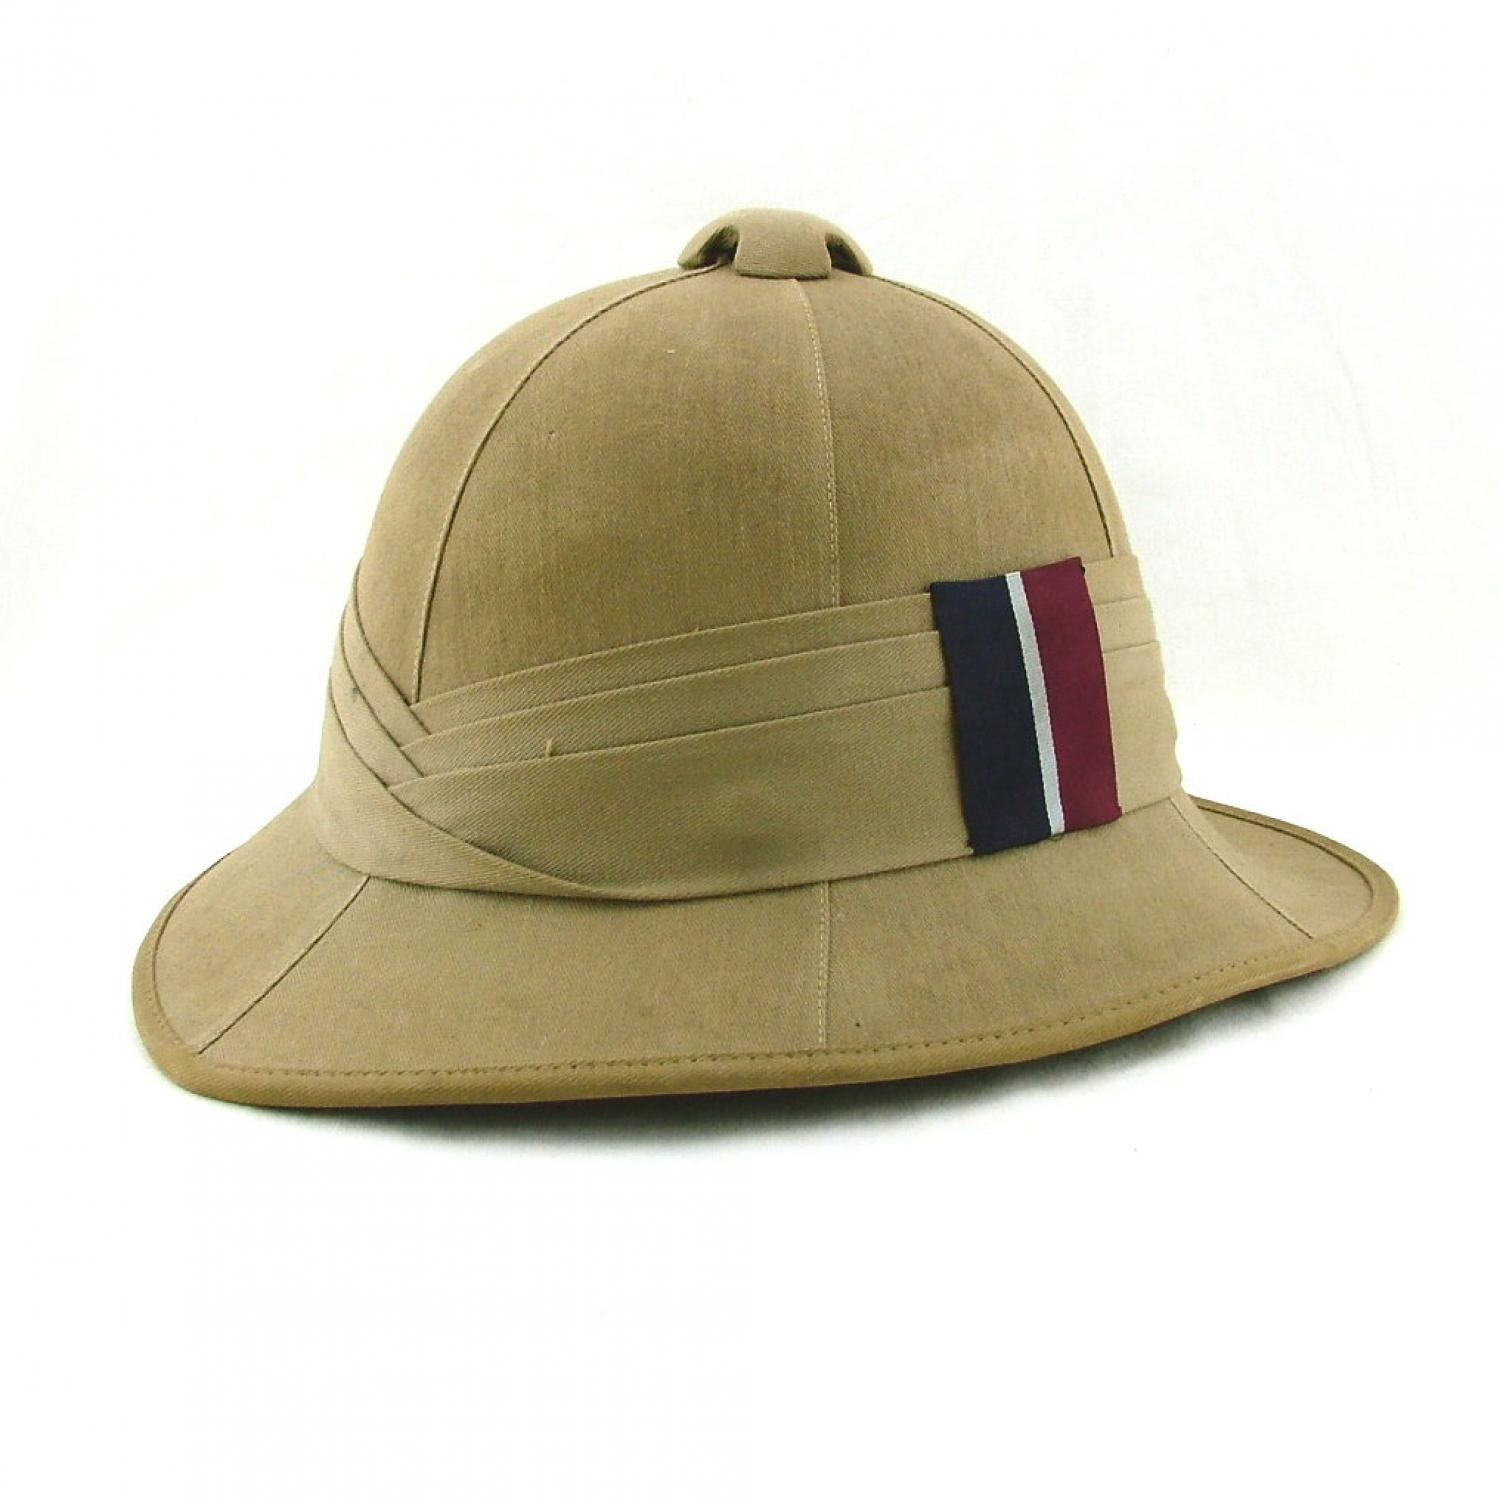 RAF issue Wolseley Helmet